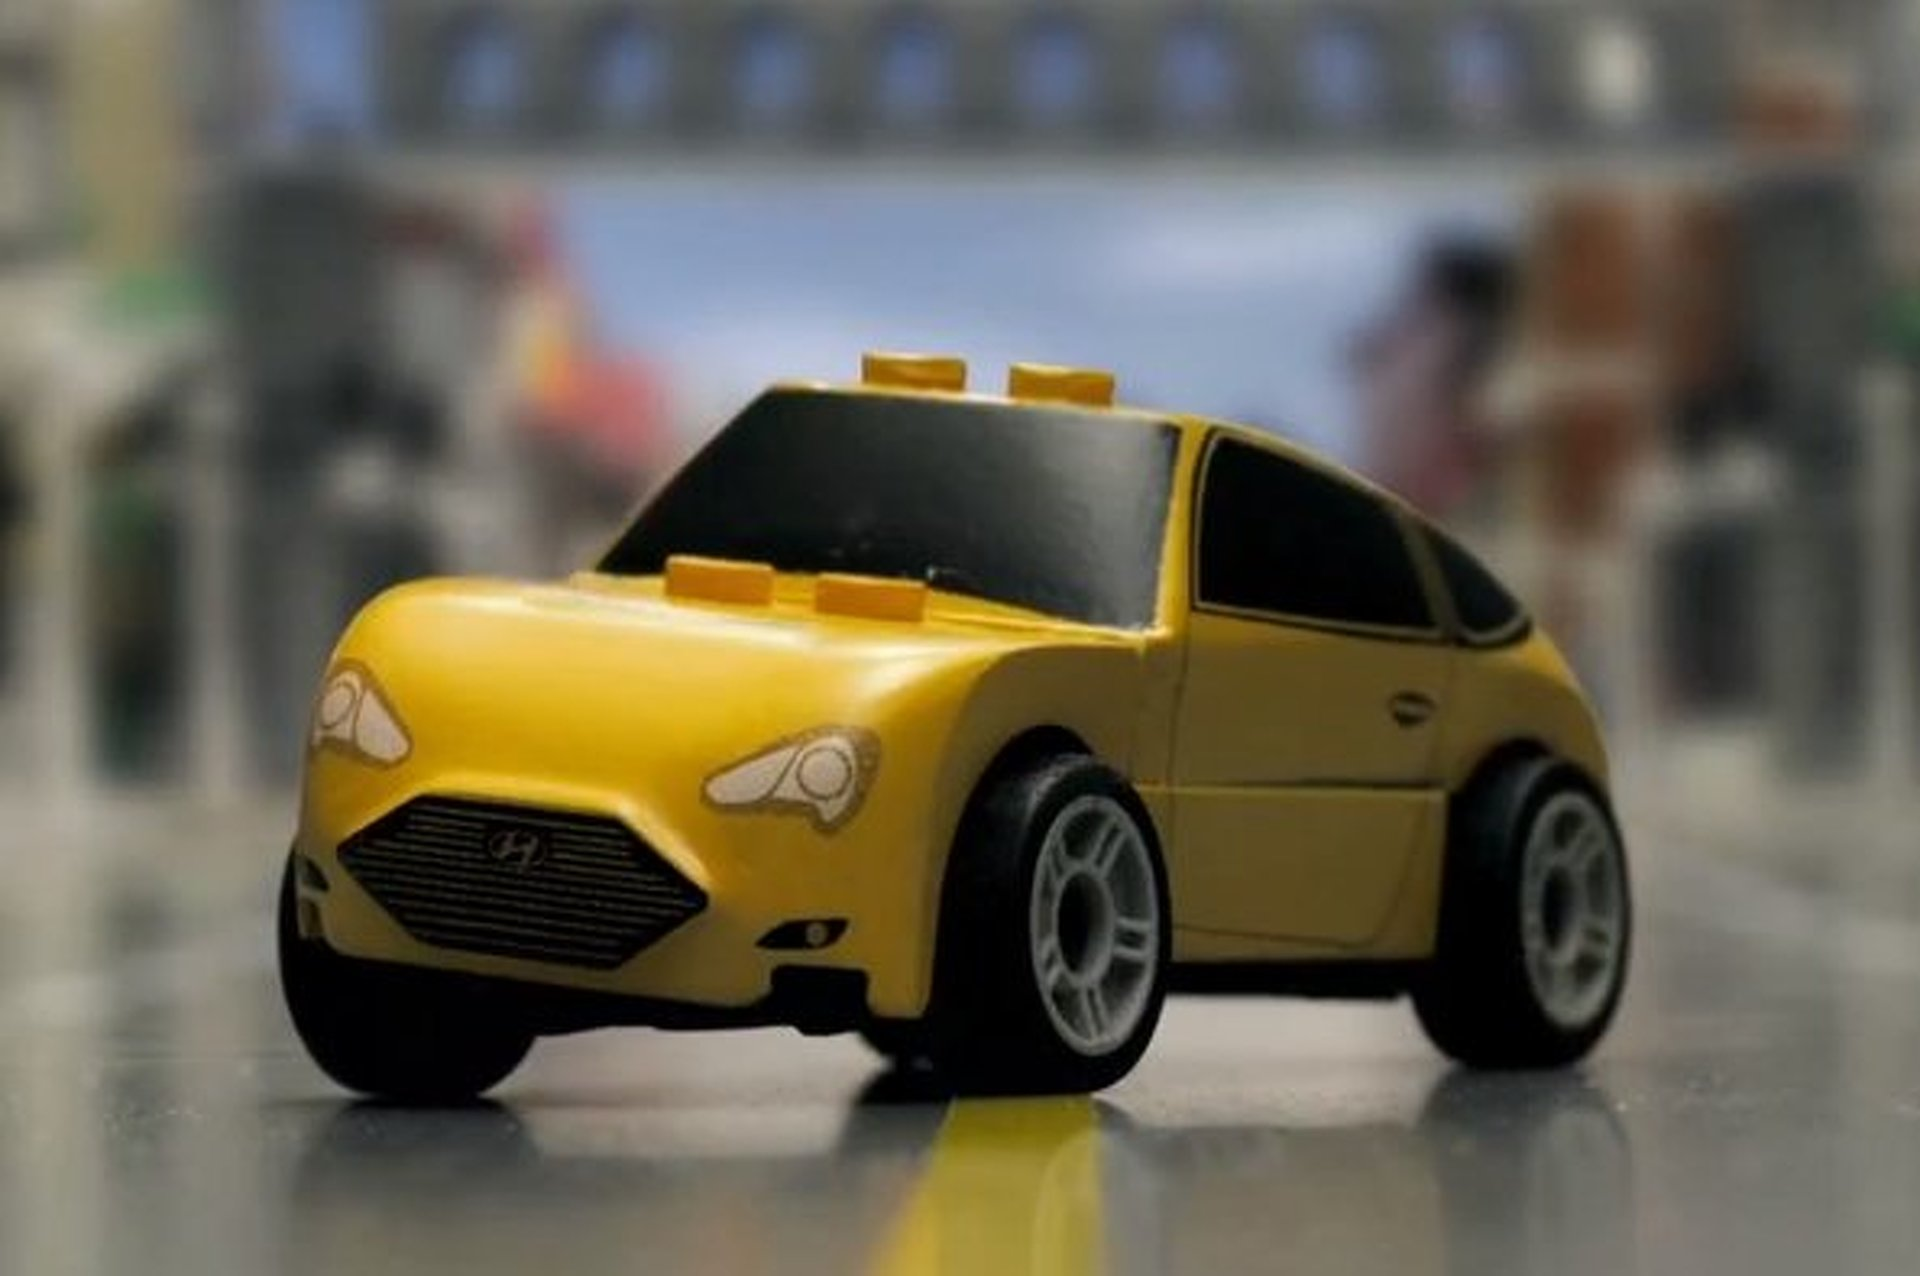 Video: Hyundai Veloster Turbo Goes LEGO in Stop-Motion Ad